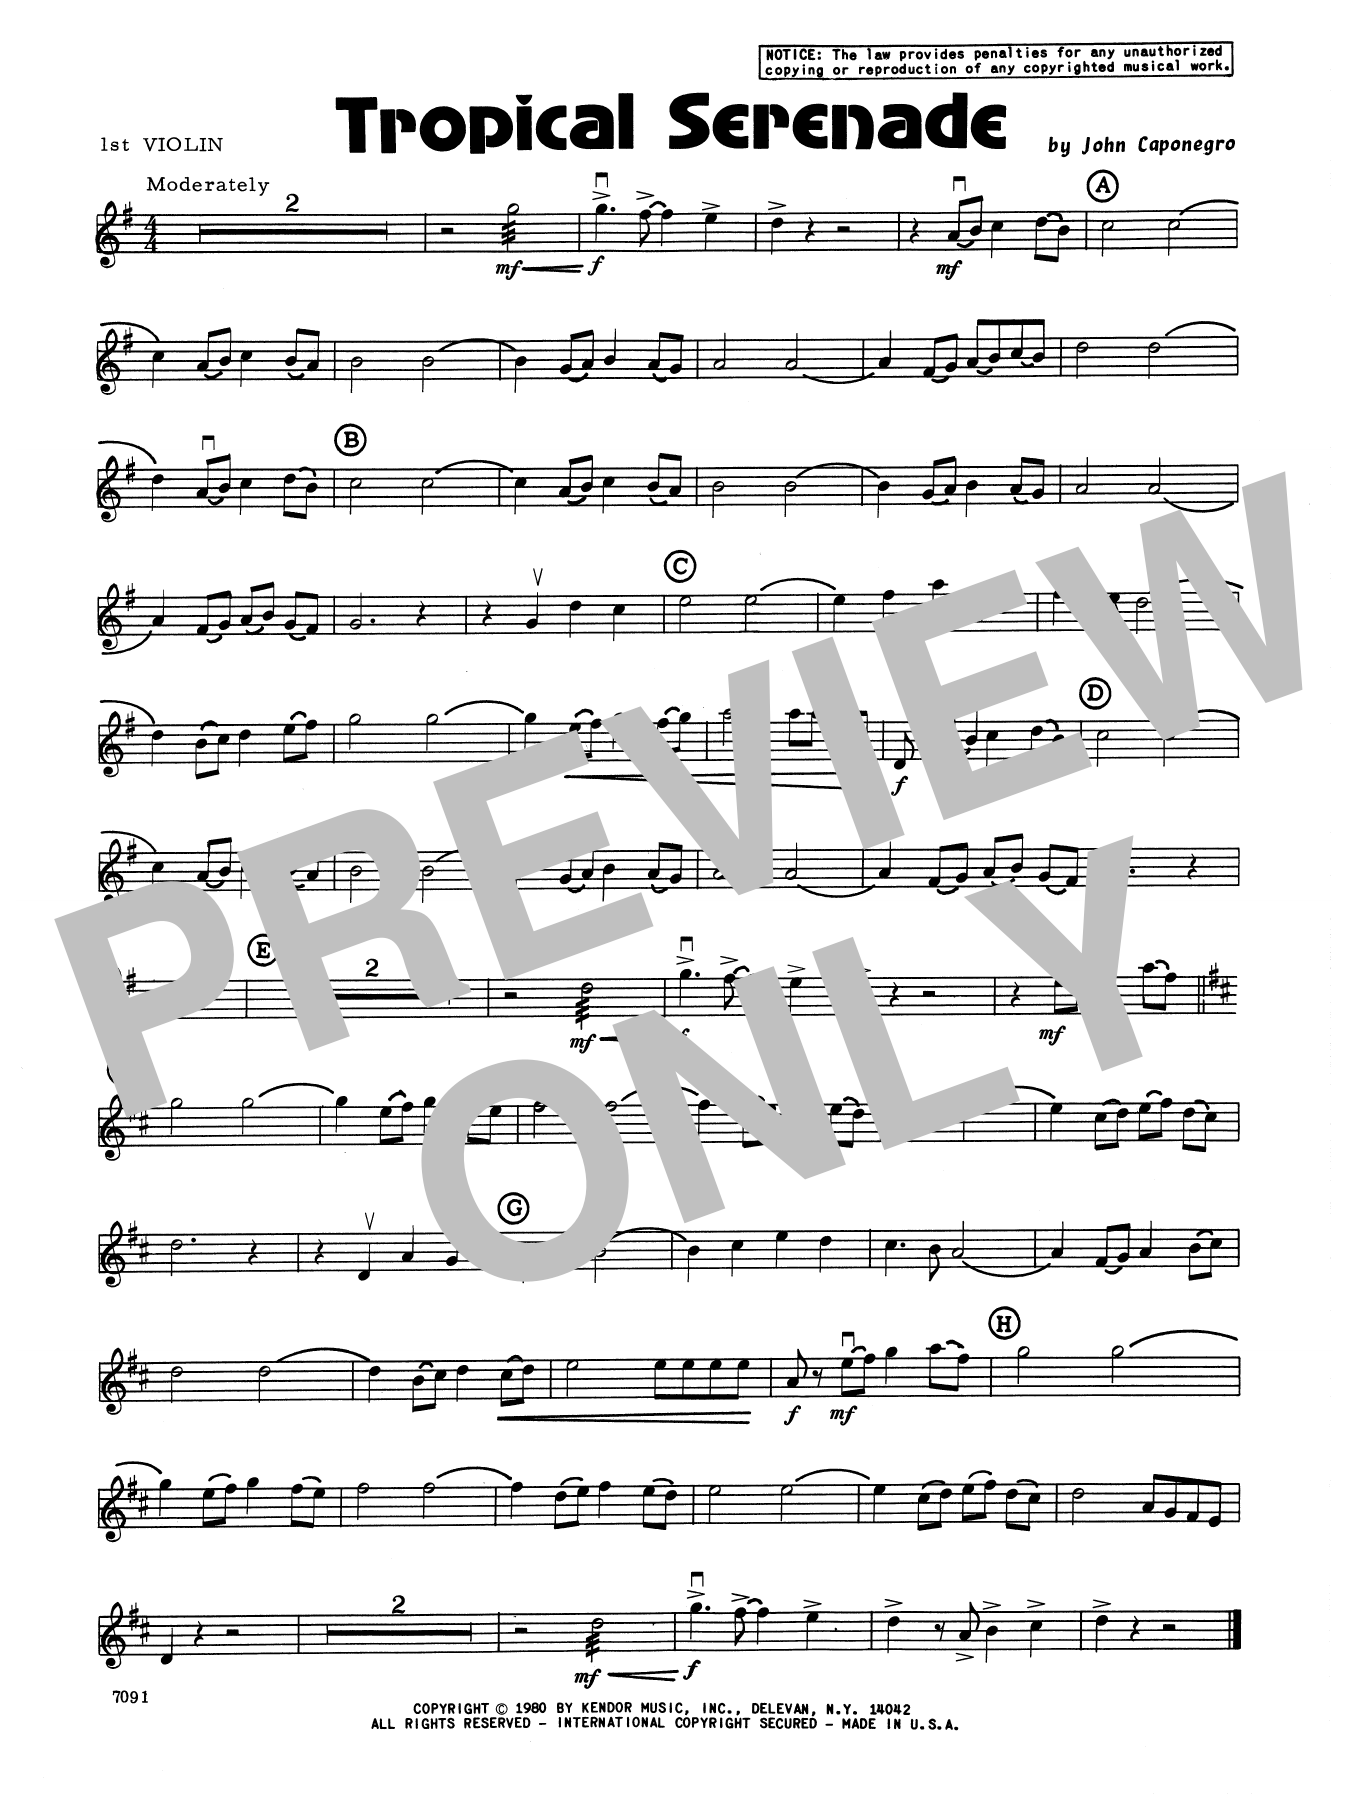 John Caponegro Tropical Serenade - 1st Violin sheet music notes and chords. Download Printable PDF.